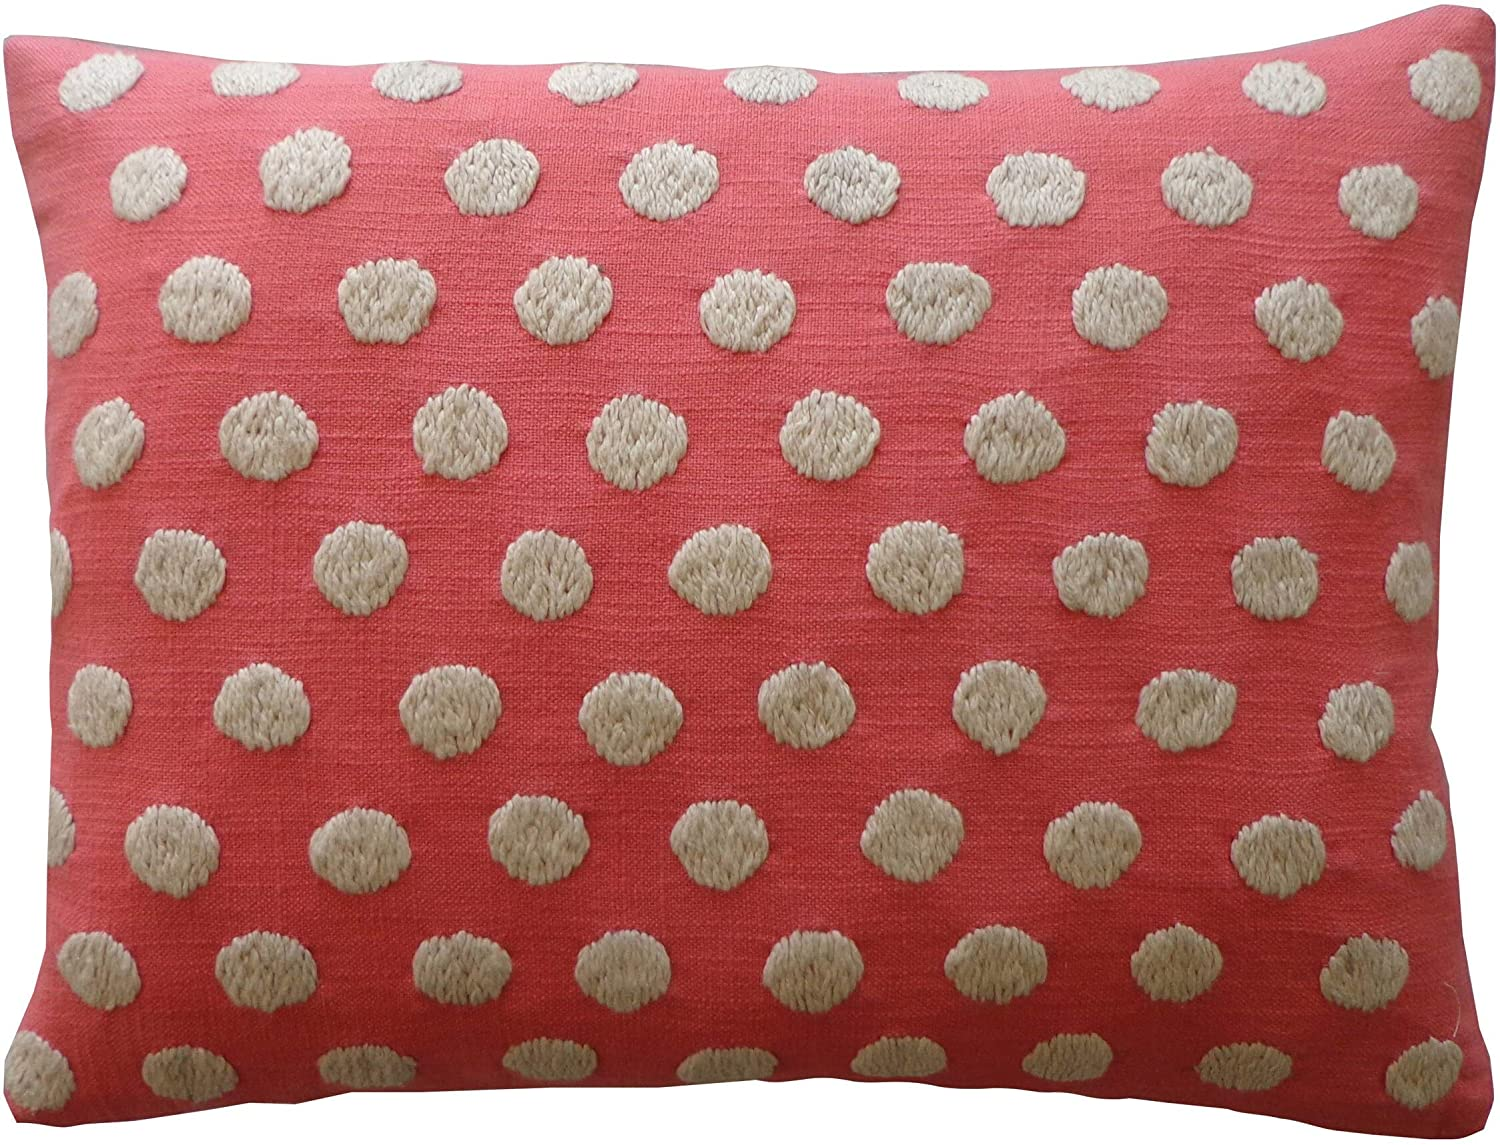 Handmade Puff Coral Pink Polka dot Cotton Accent Pillow White